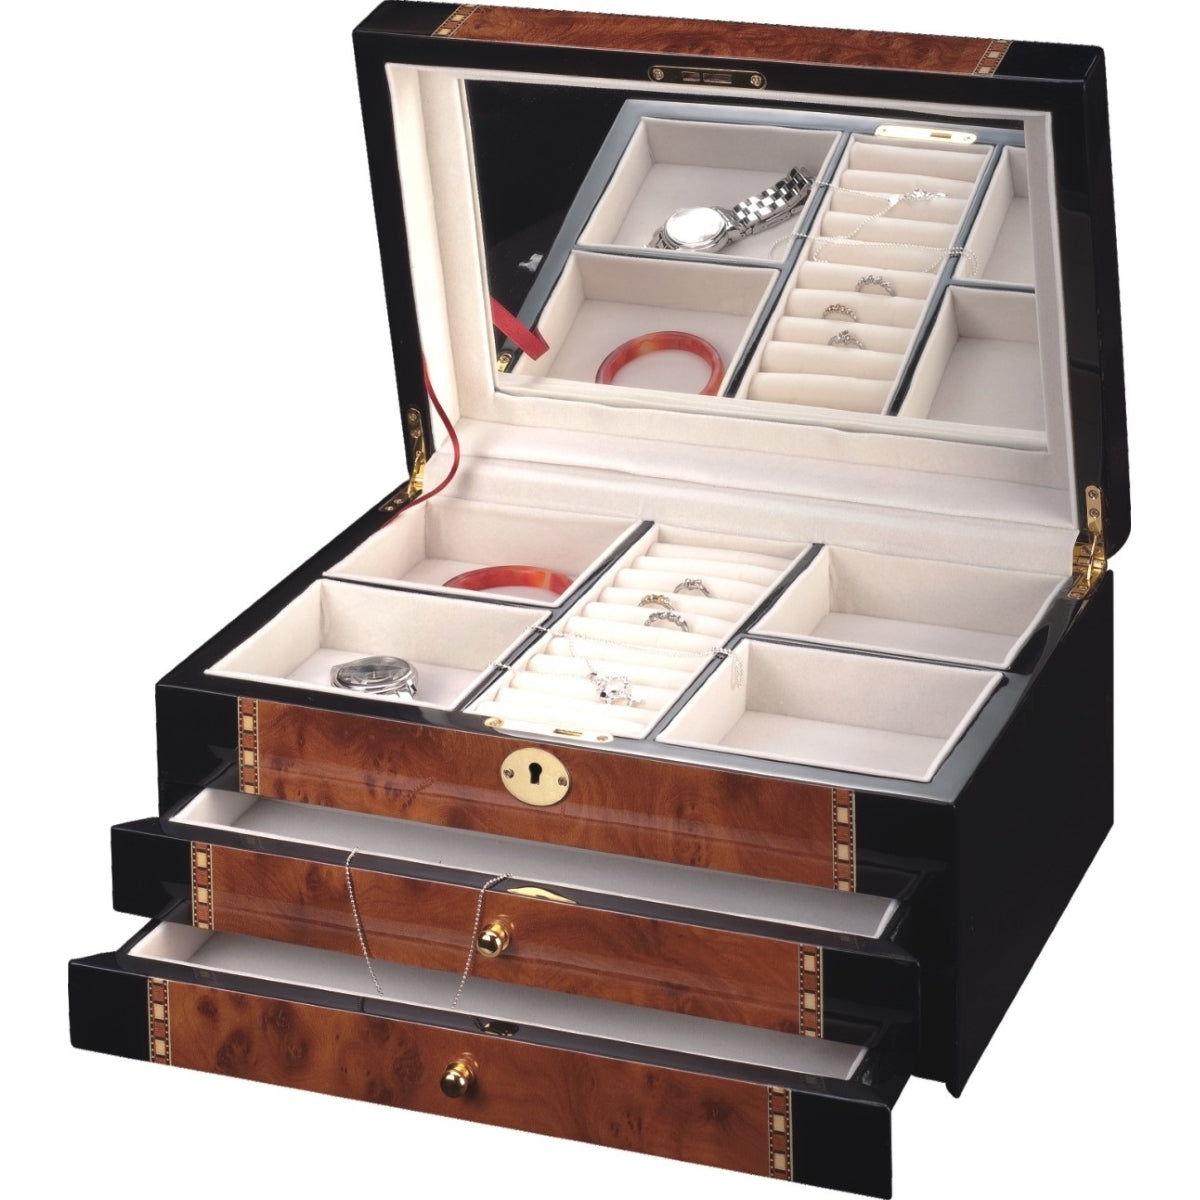 Pearl Time Large 2-Drawer Jewellery Box, Piano Black With Brown, 35cm